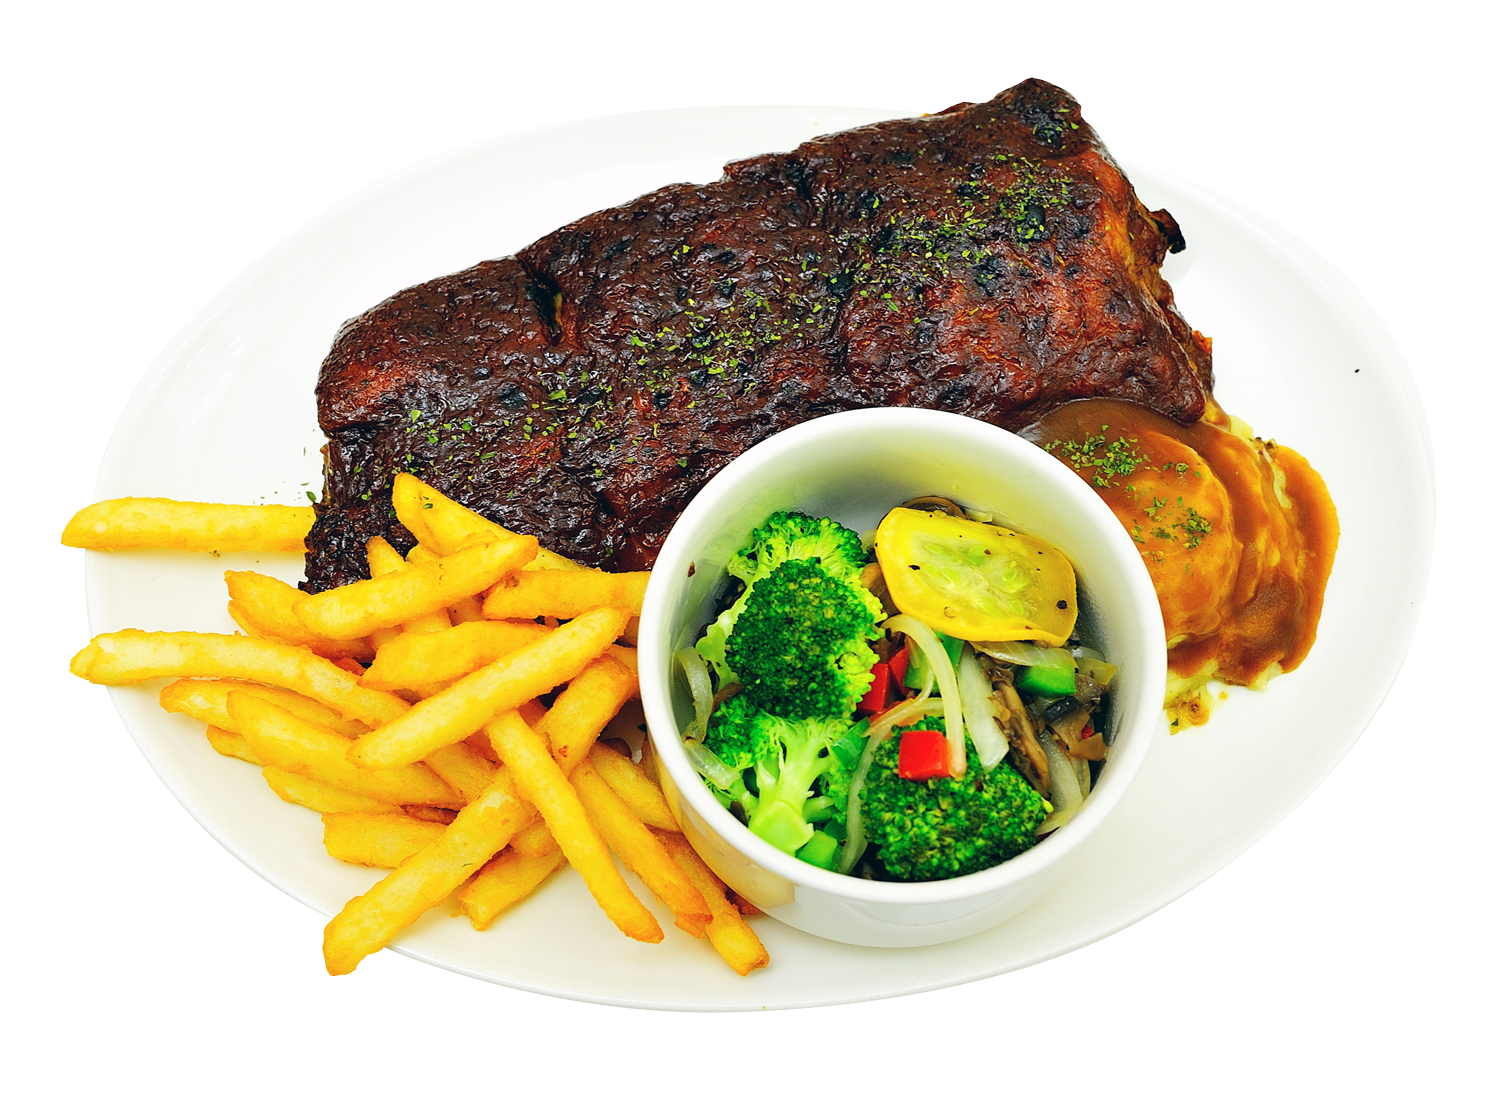 Food png. Plate of transparent images